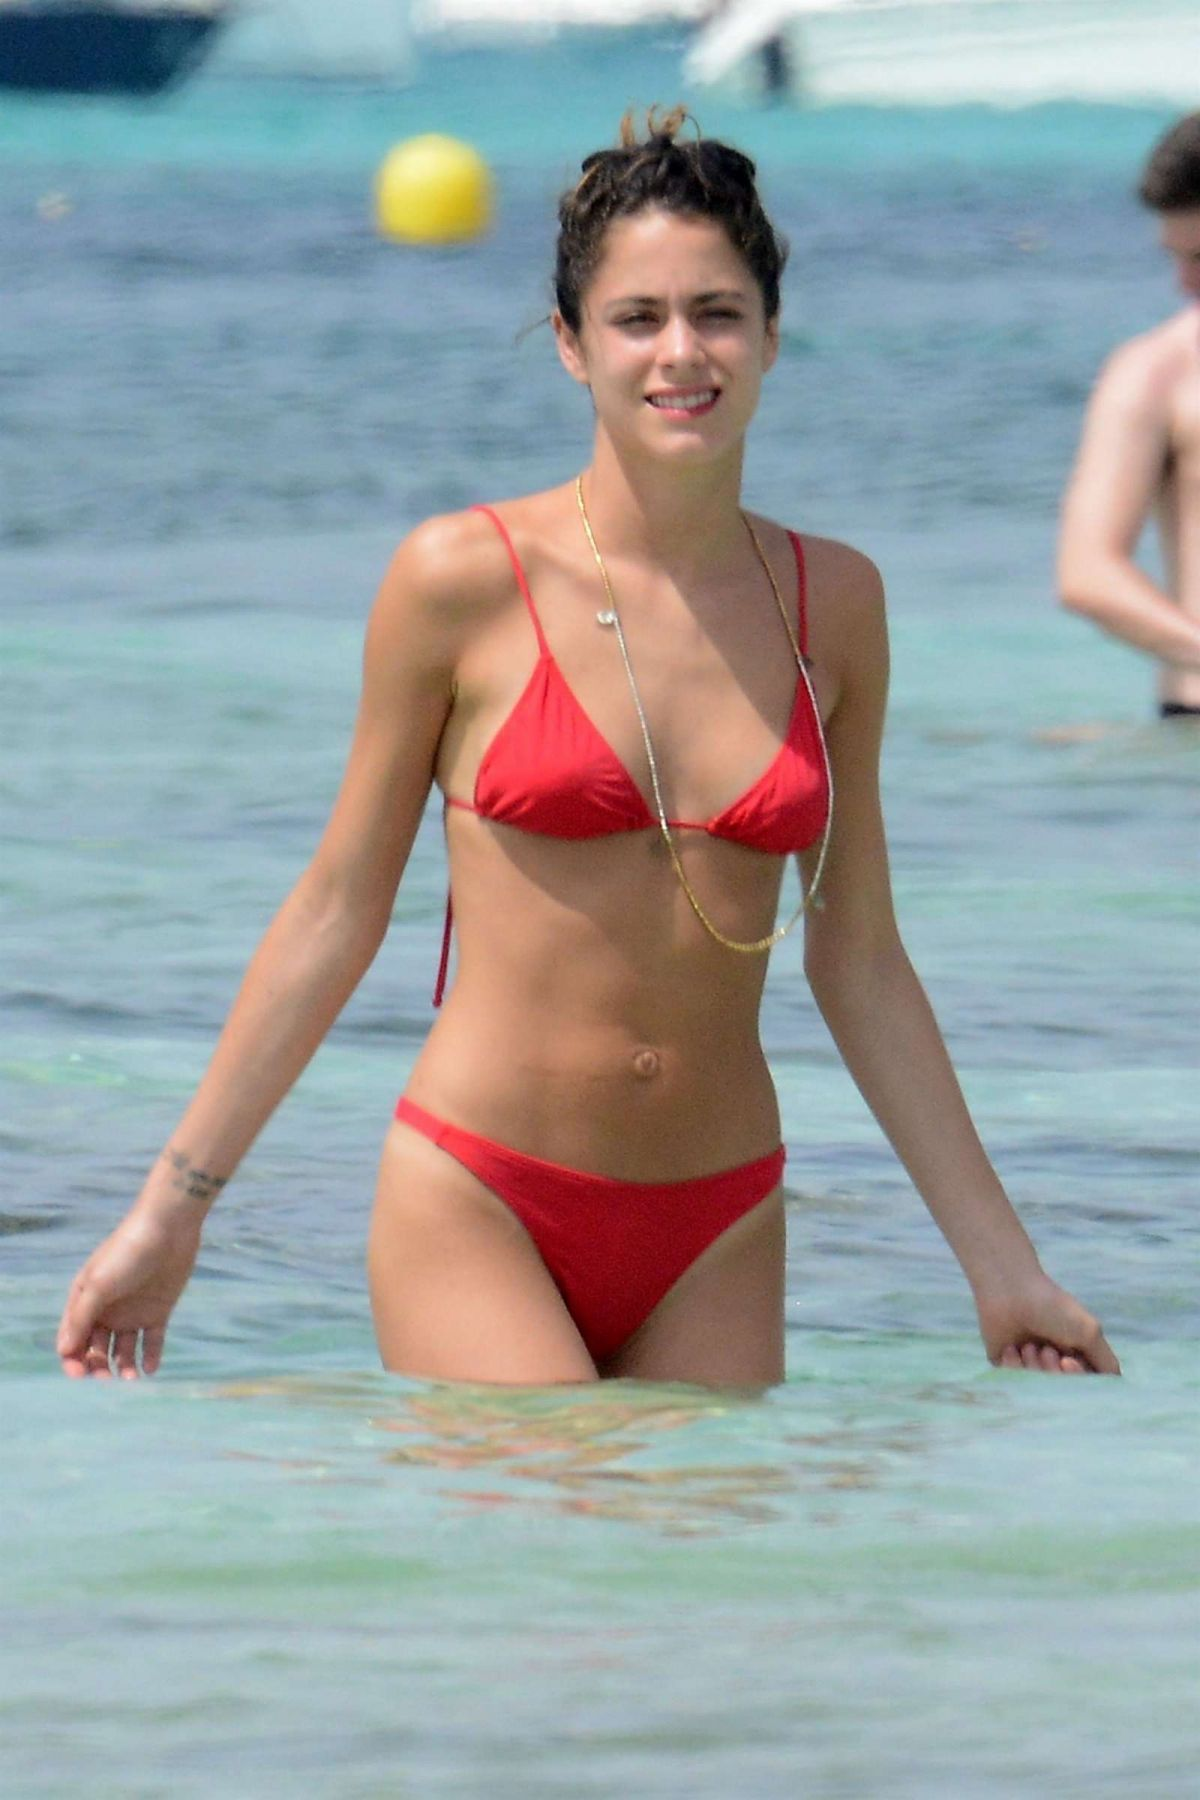 martina stoessel at a beach in formentera martina stoessel at a beach - Martina Kompel Lebenslauf